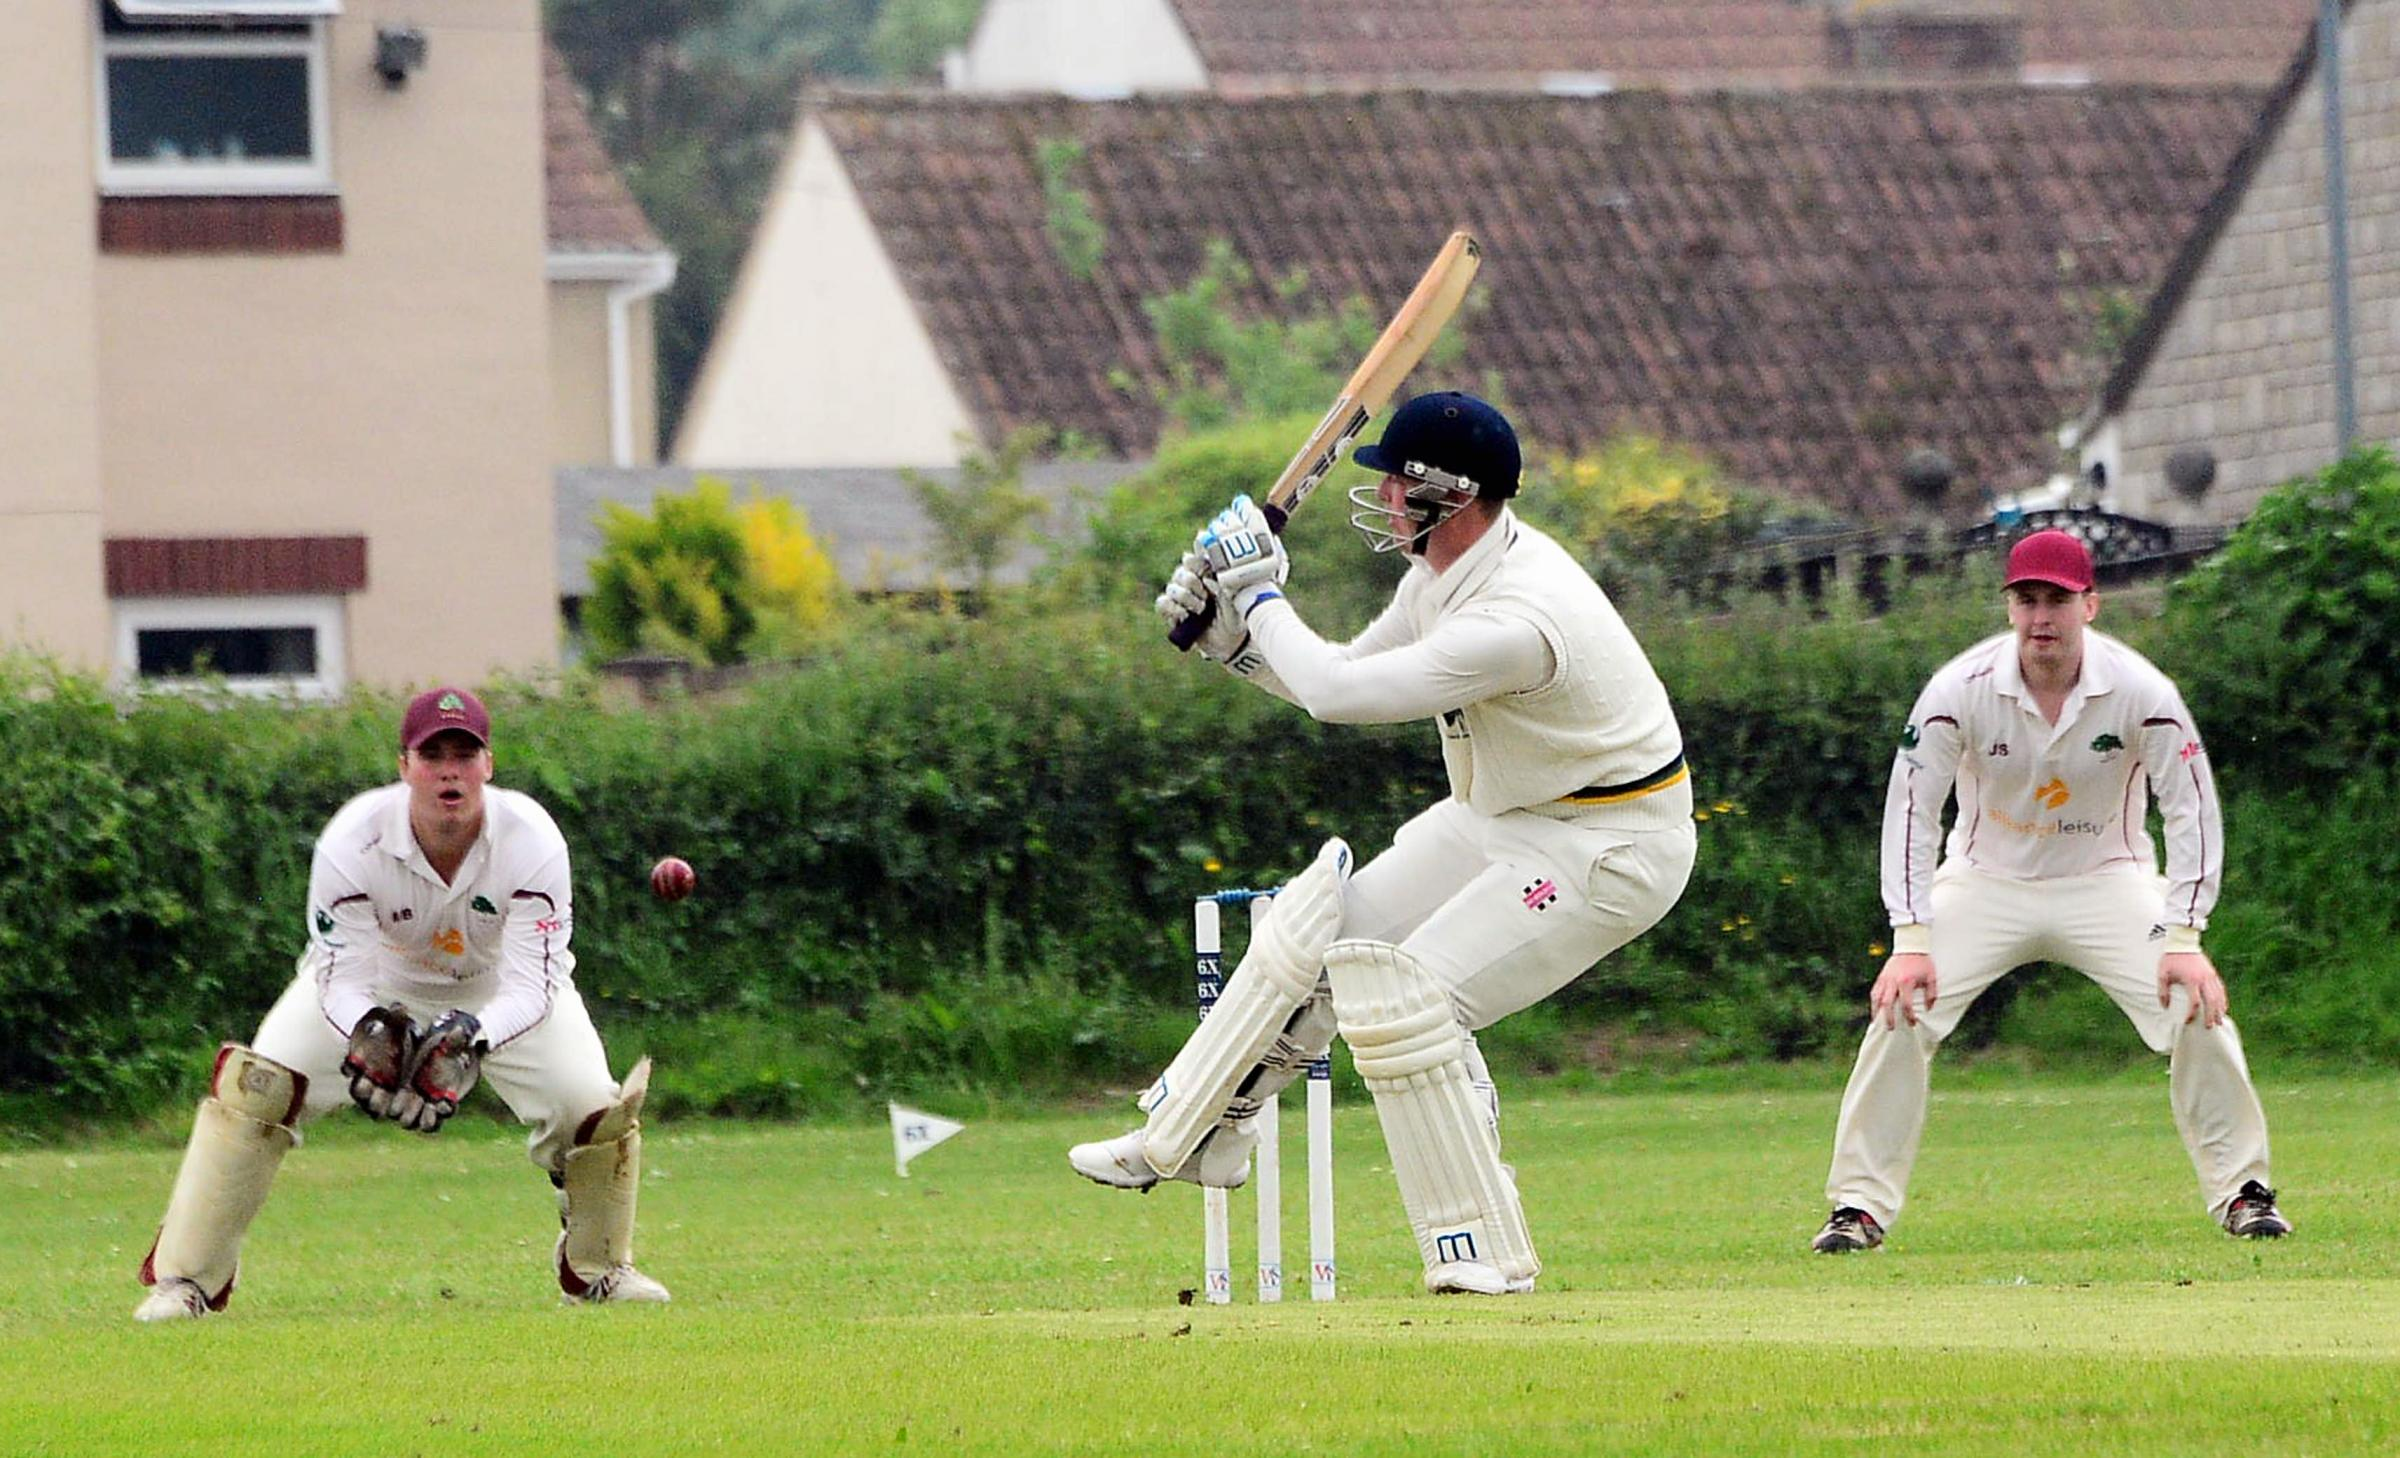 TON UP: Louis Kraucamp on his way to 105 for Ilminster against Shapwick & Polden. Pic: Steve Richardson